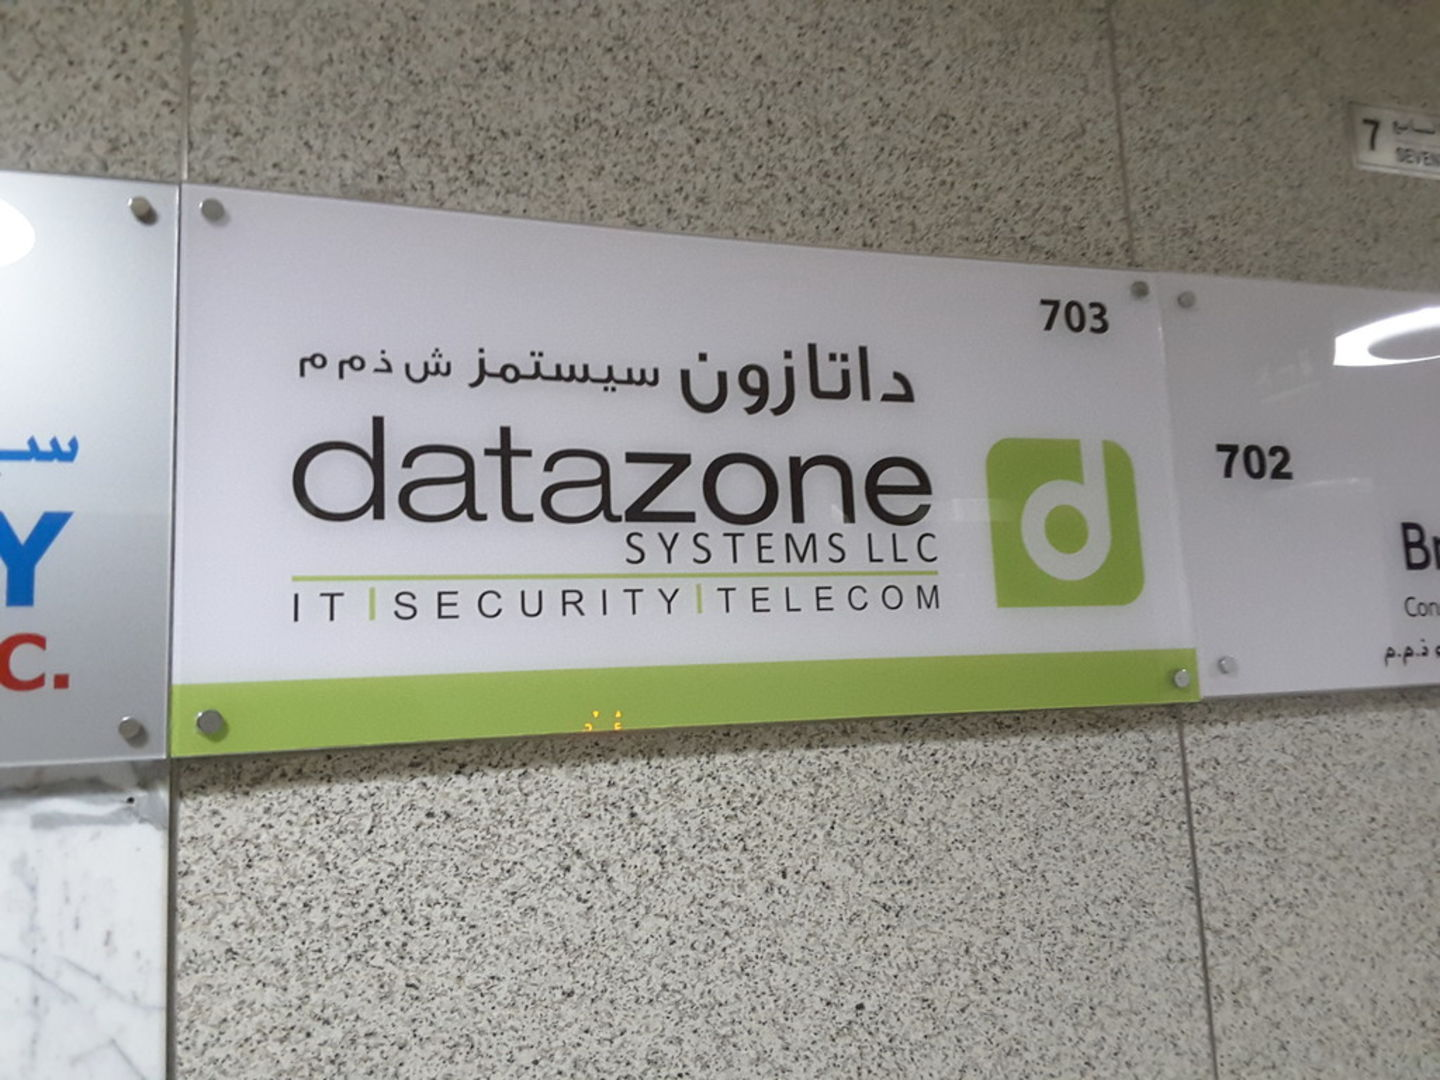 Walif-business-datazone-systems